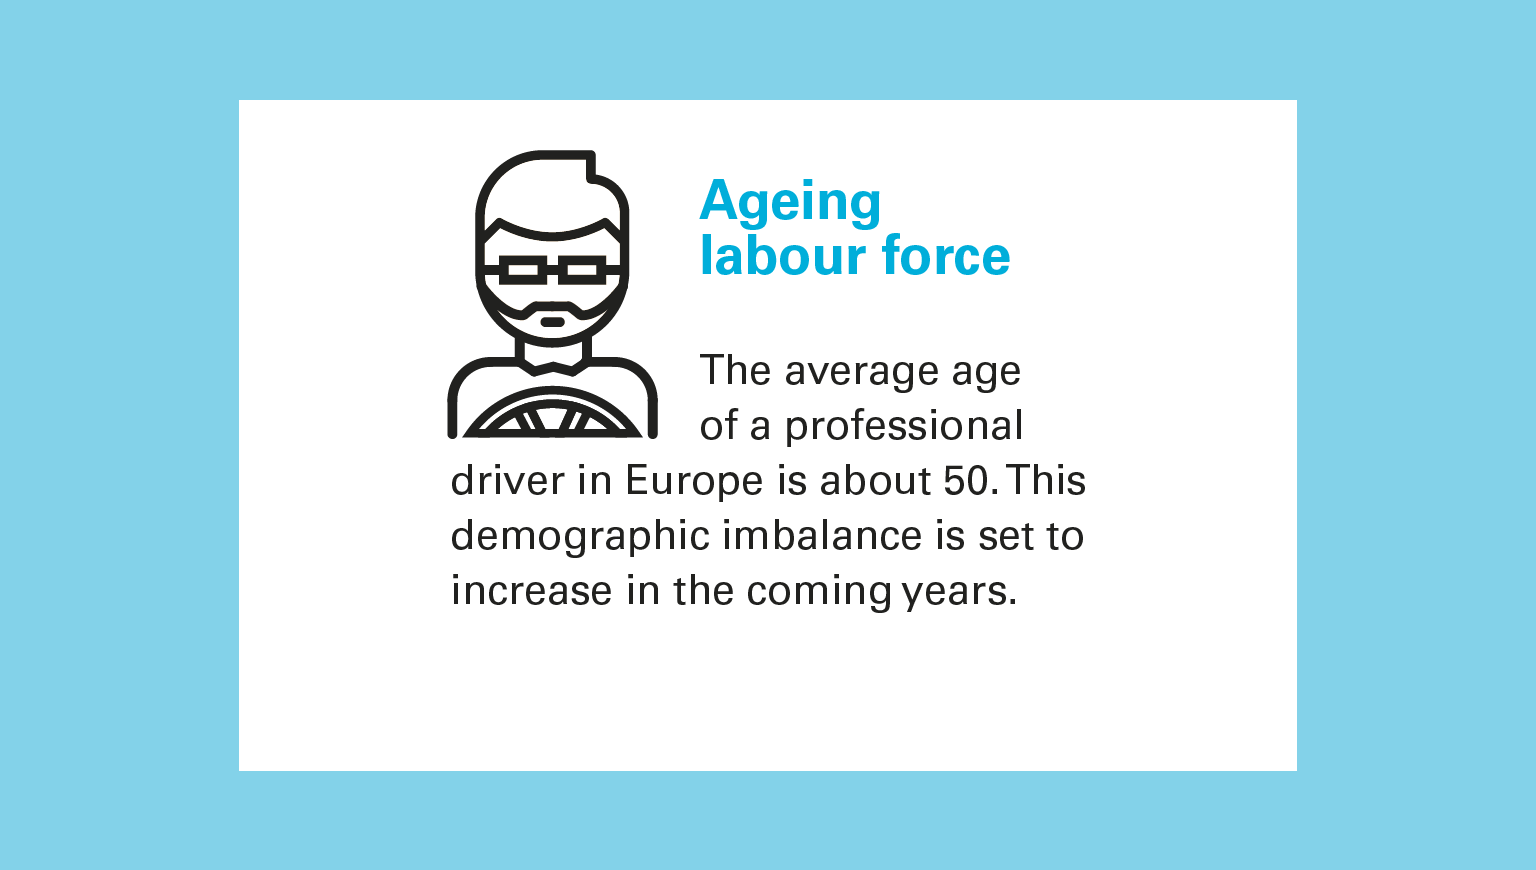 Ageing labour force